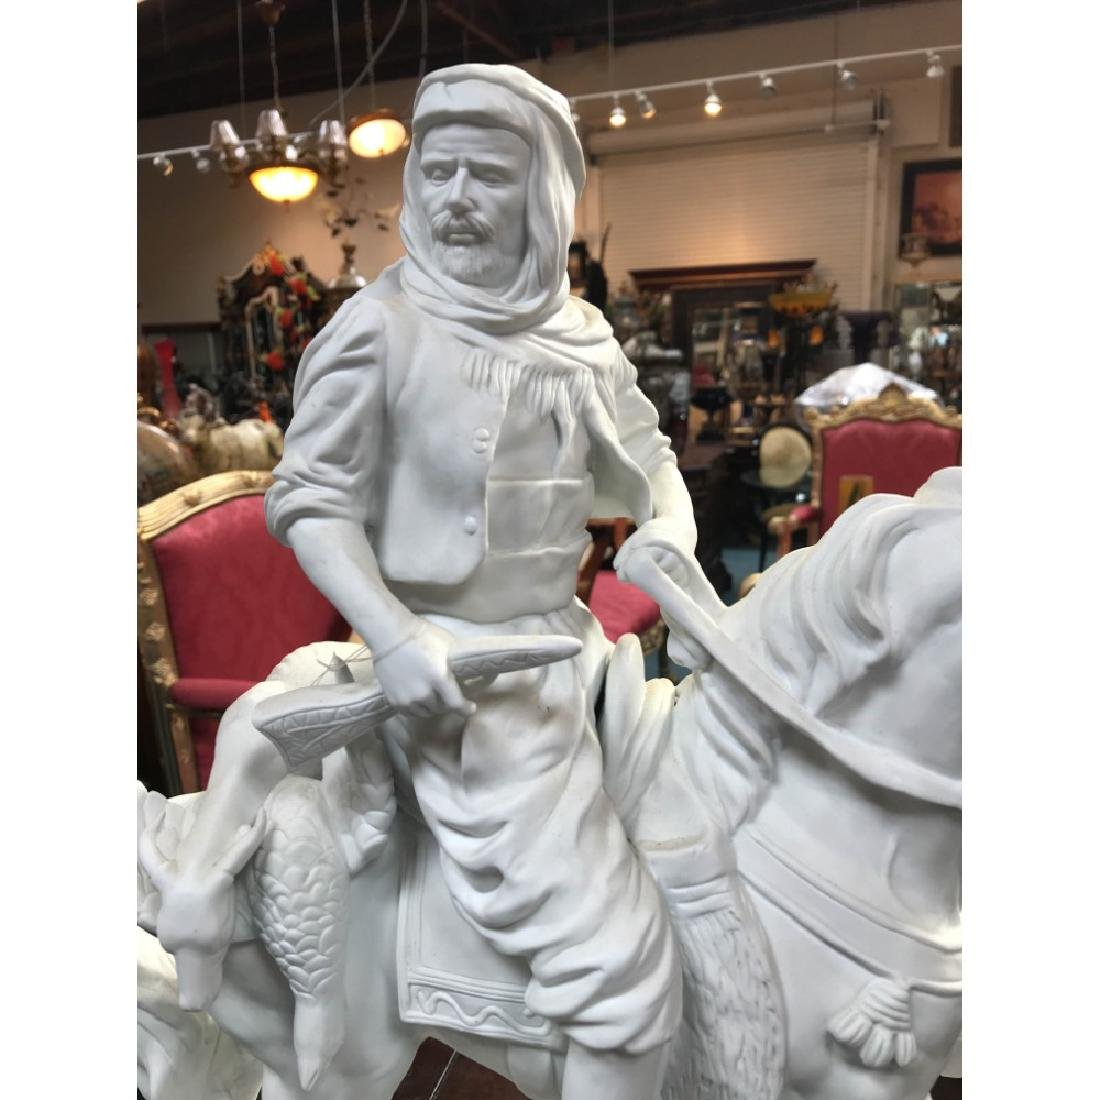 White Bisque Porcelain Statue of a Hunter - 2